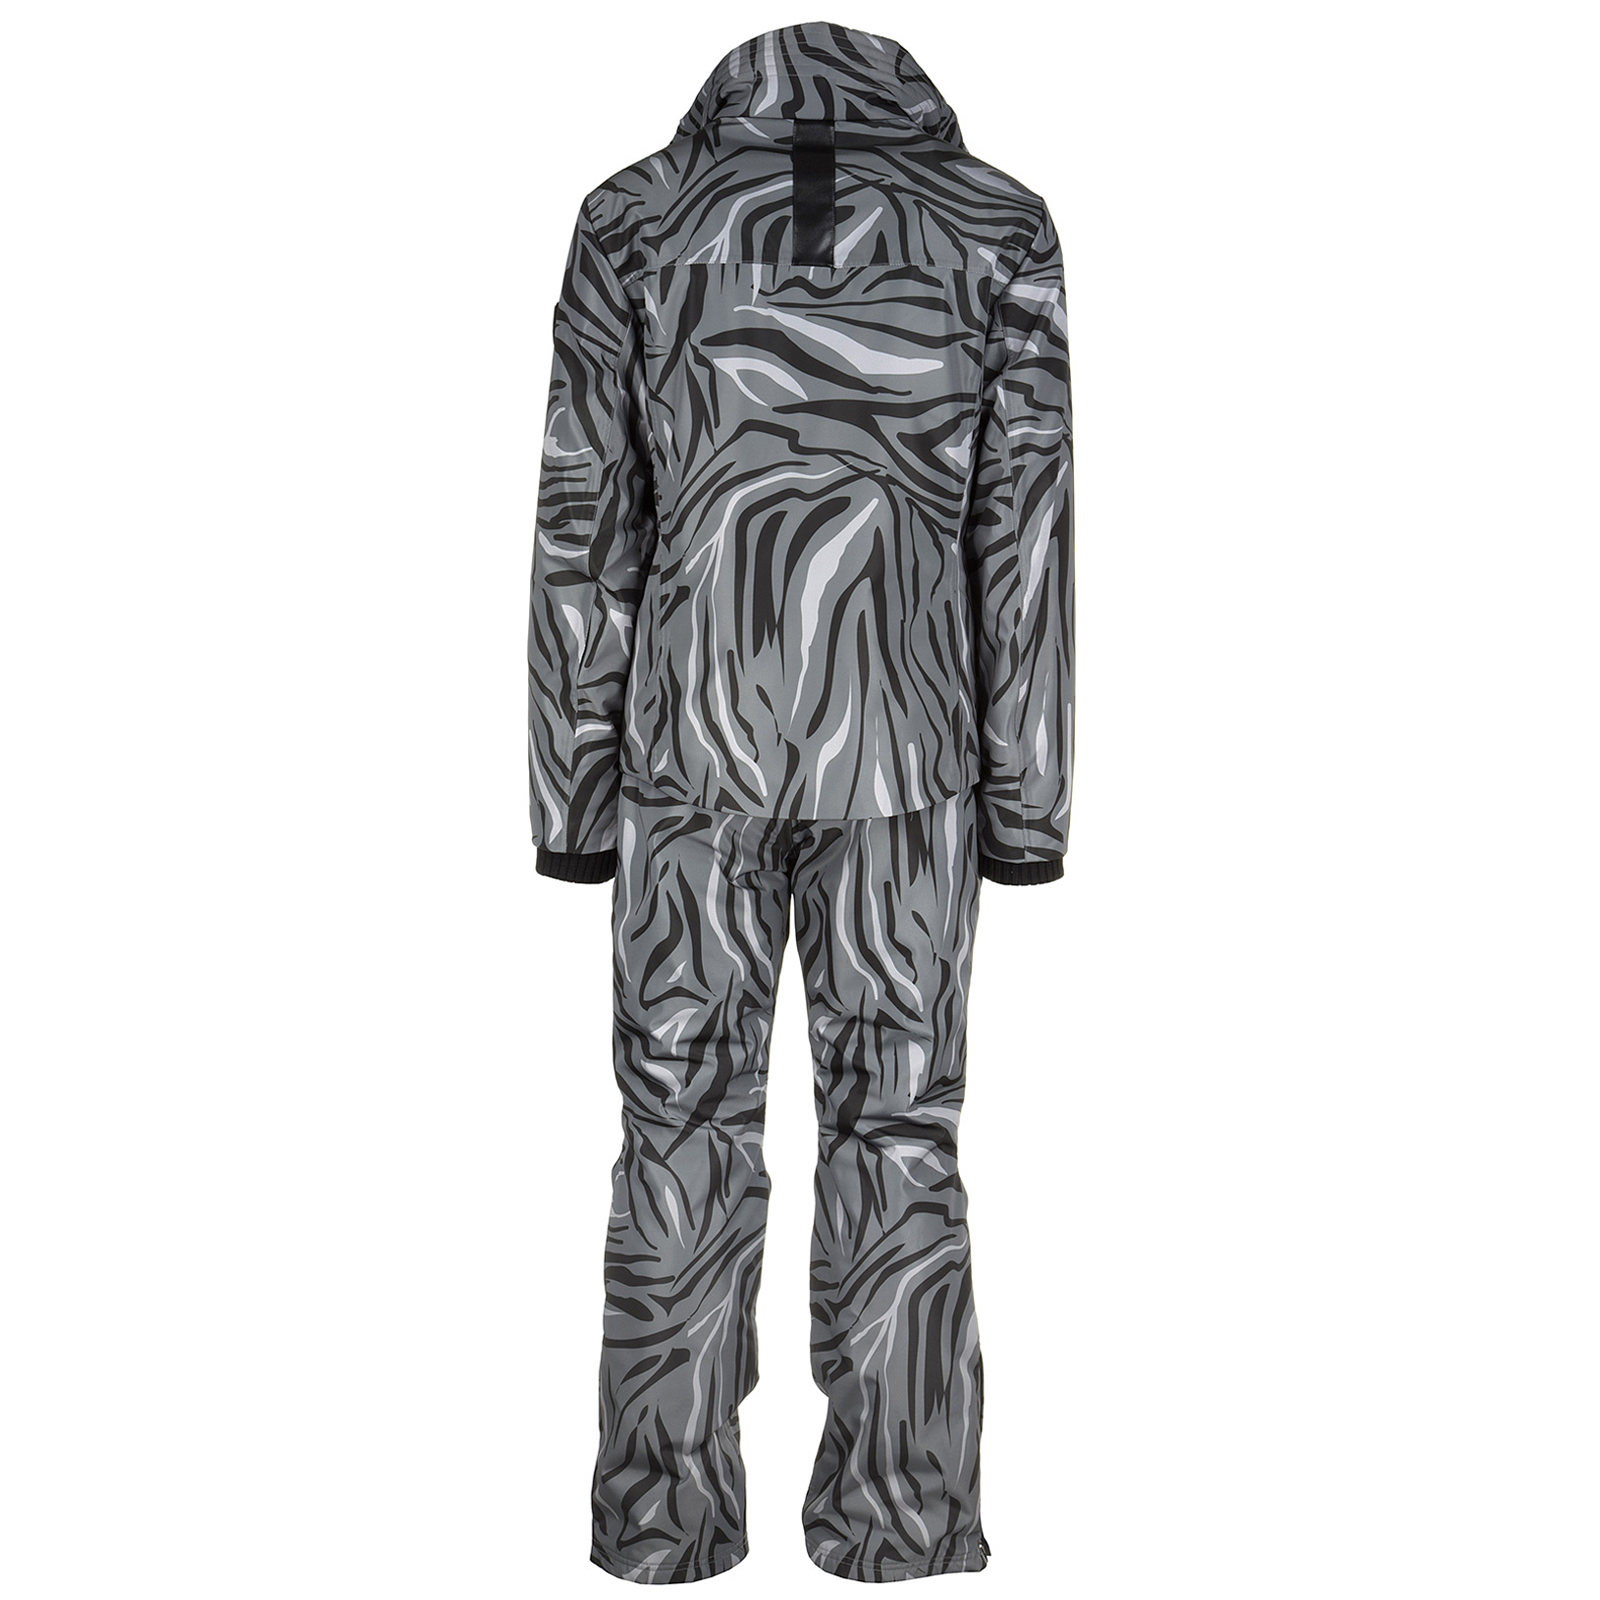 Men's ski suit jacket trousers winter